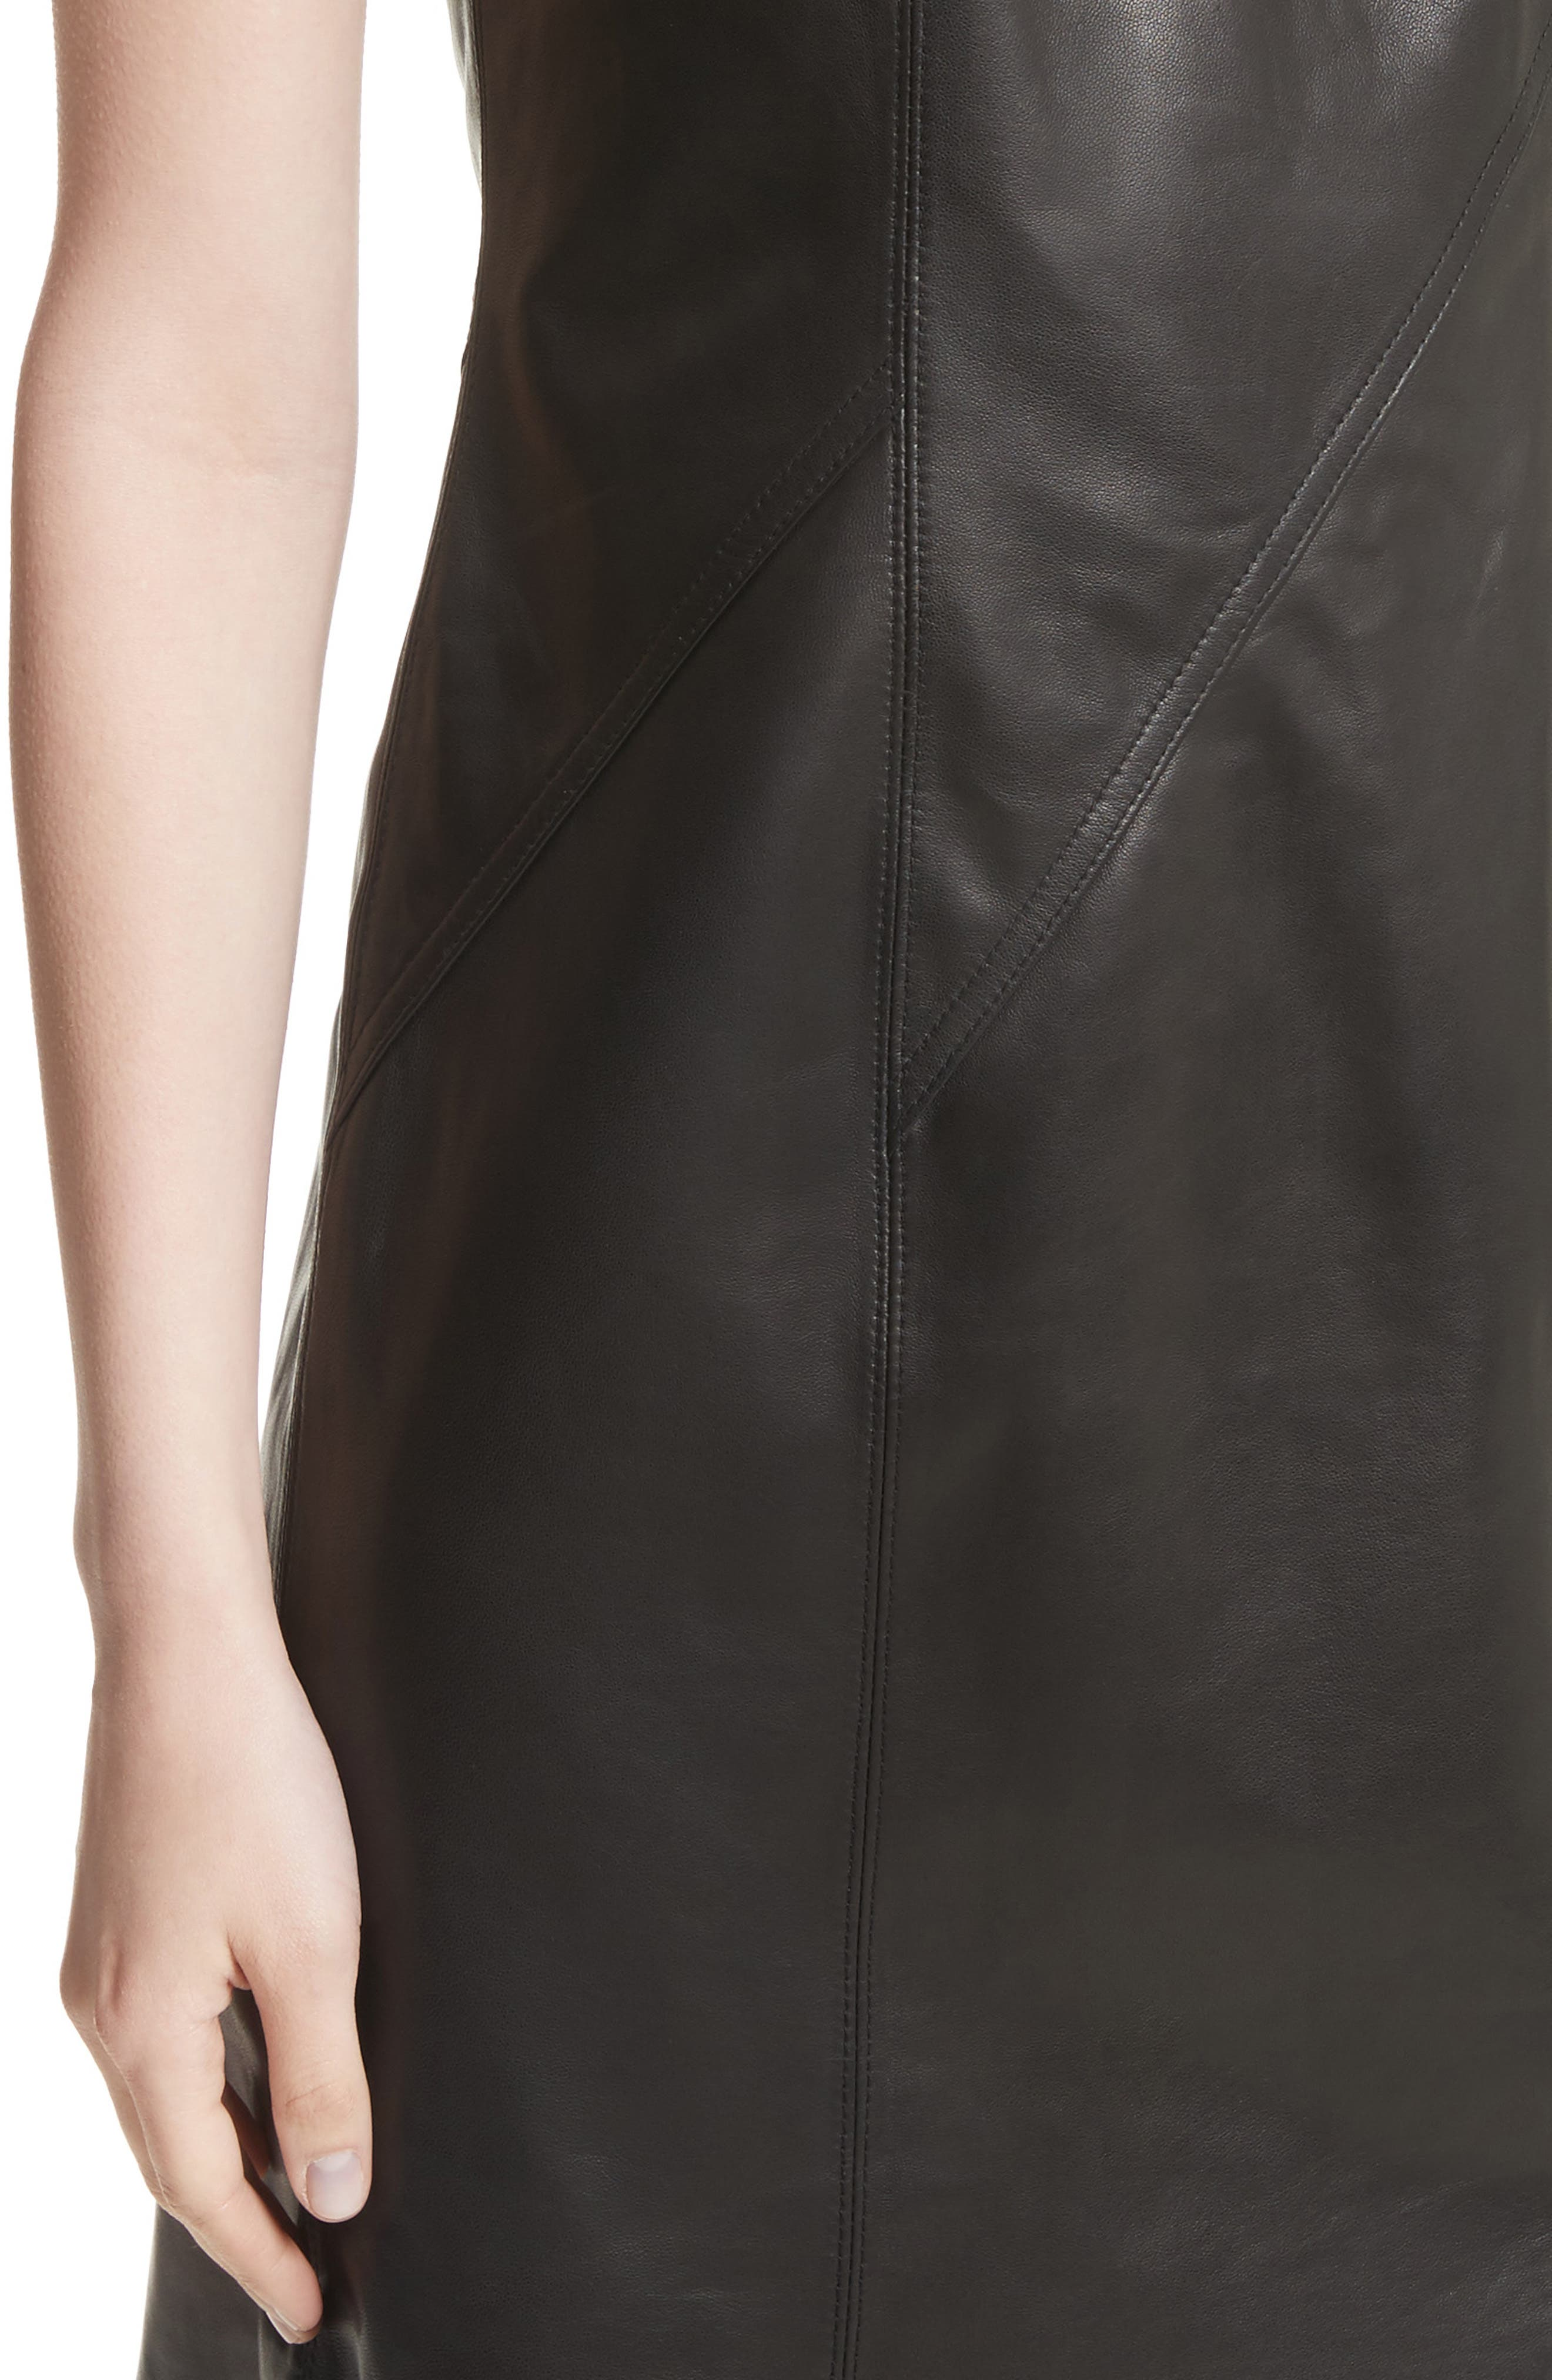 Loxley Leather Dress,                             Alternate thumbnail 4, color,